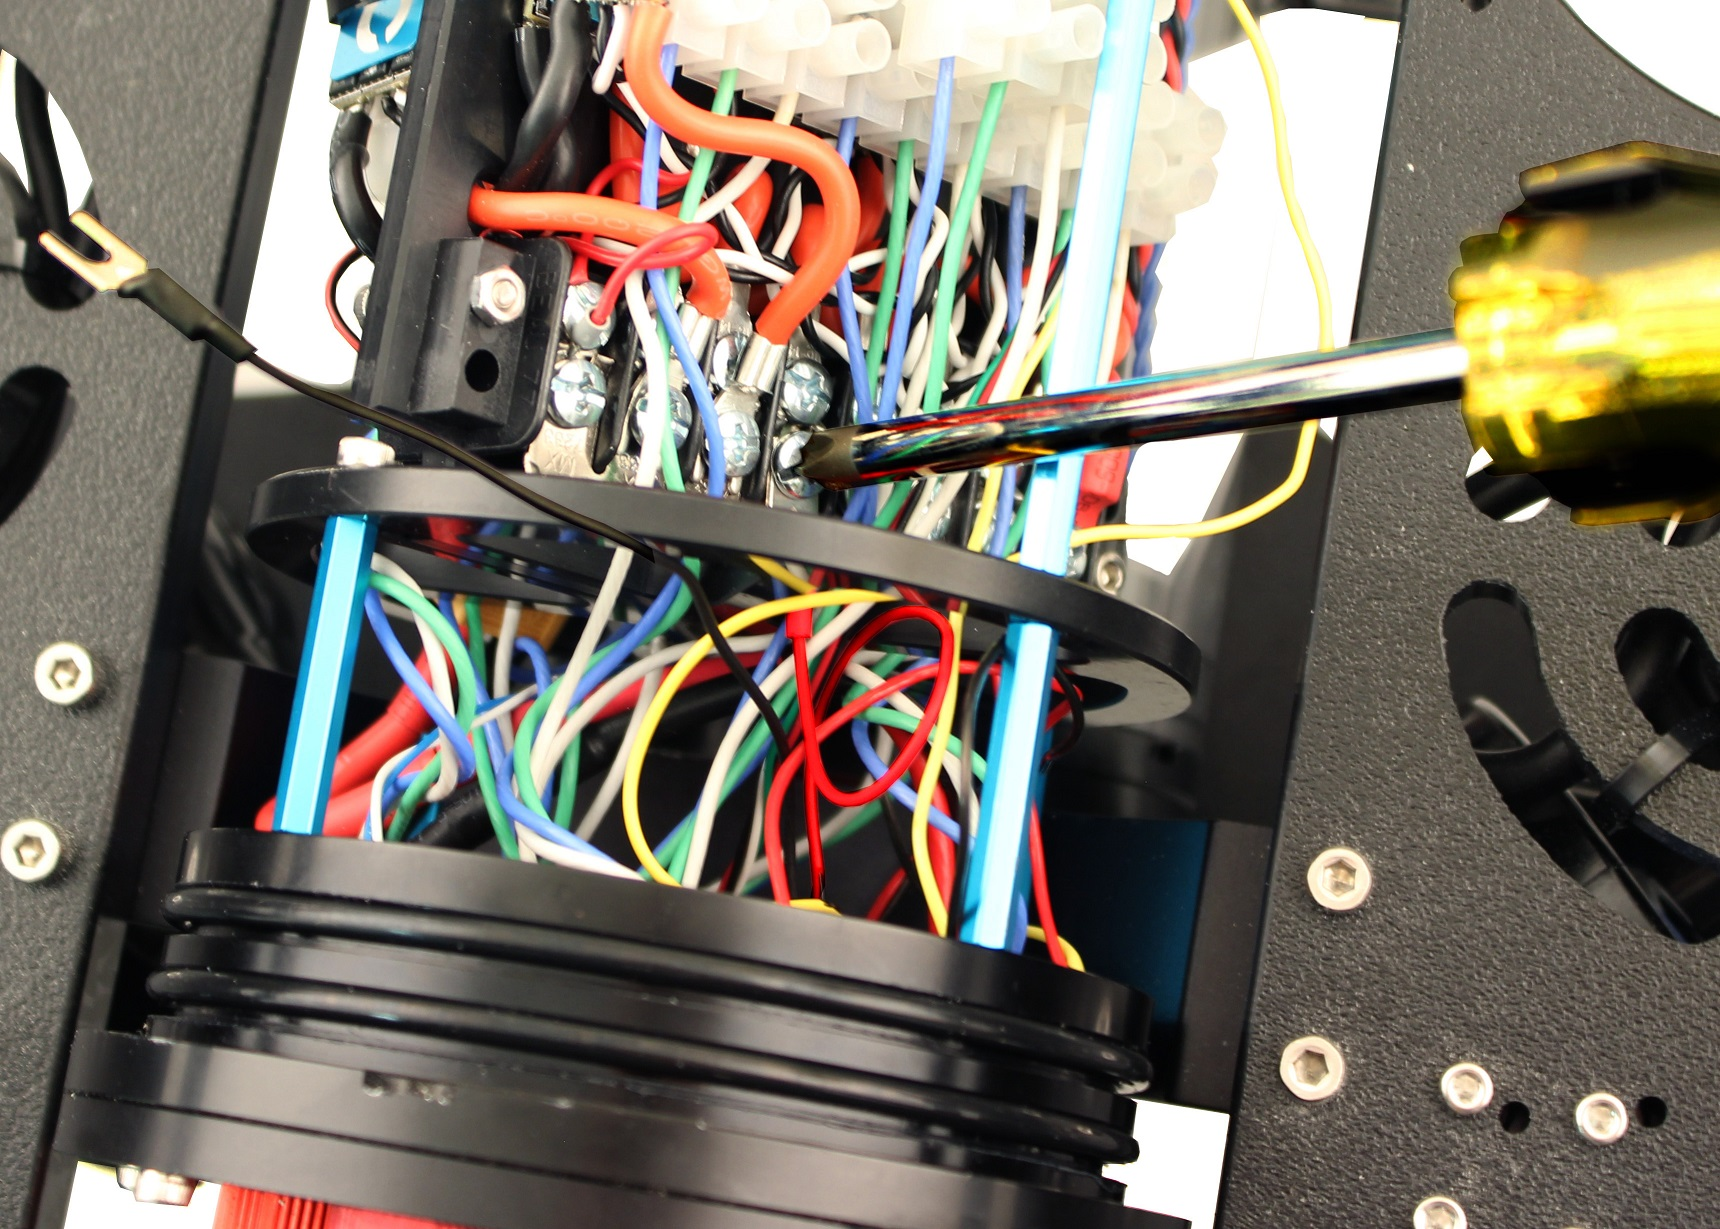 Newton Gripper Automotive Wiring Terminal Block Connect The Power Wires Red And Black Into Open Screw Terminals On Respective Positive Negative Blocks